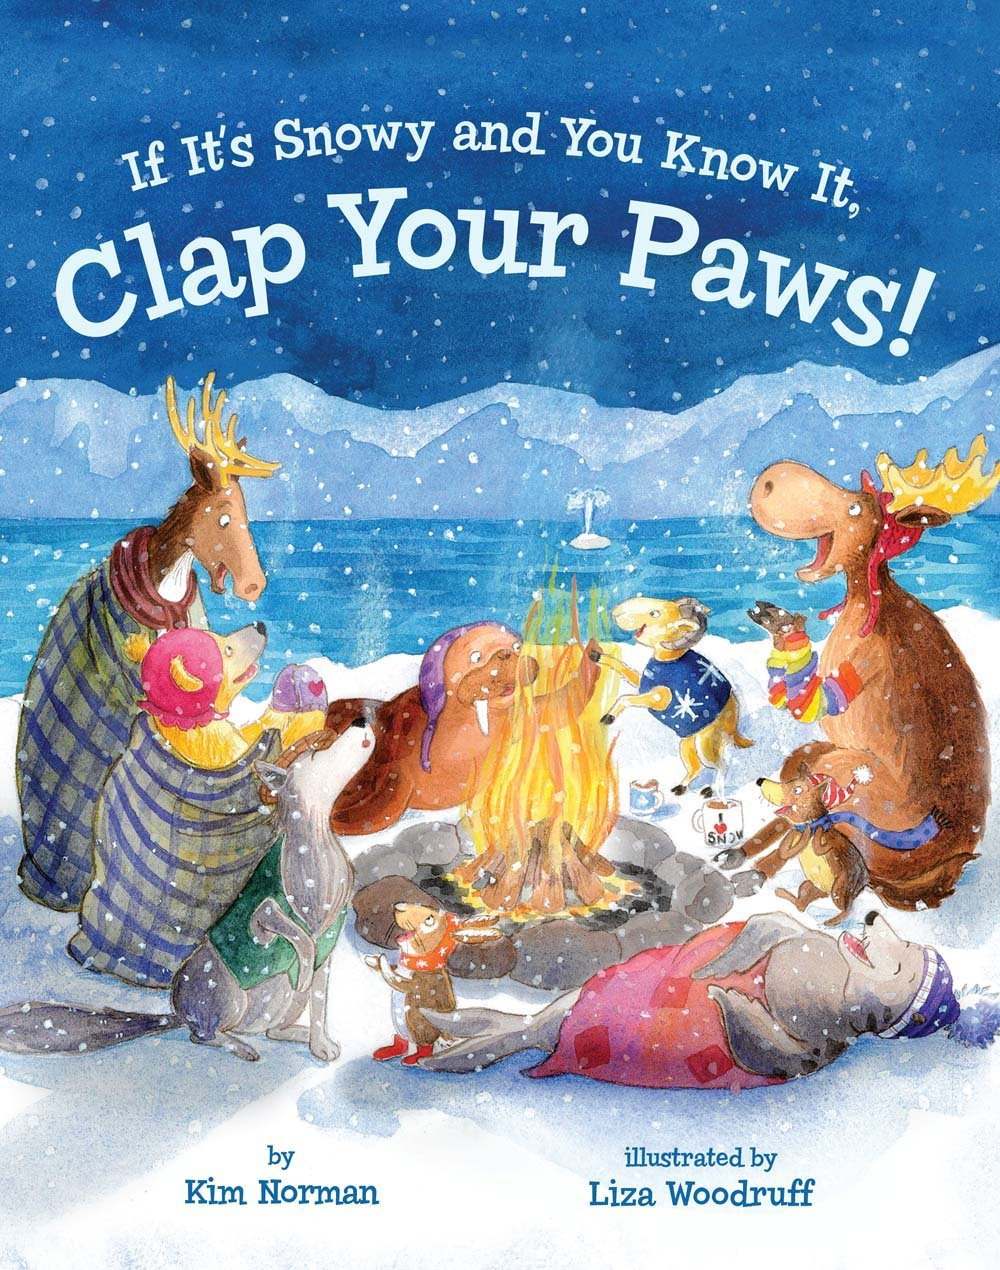 If It's Snowy and You Know It Clap Your Paws!